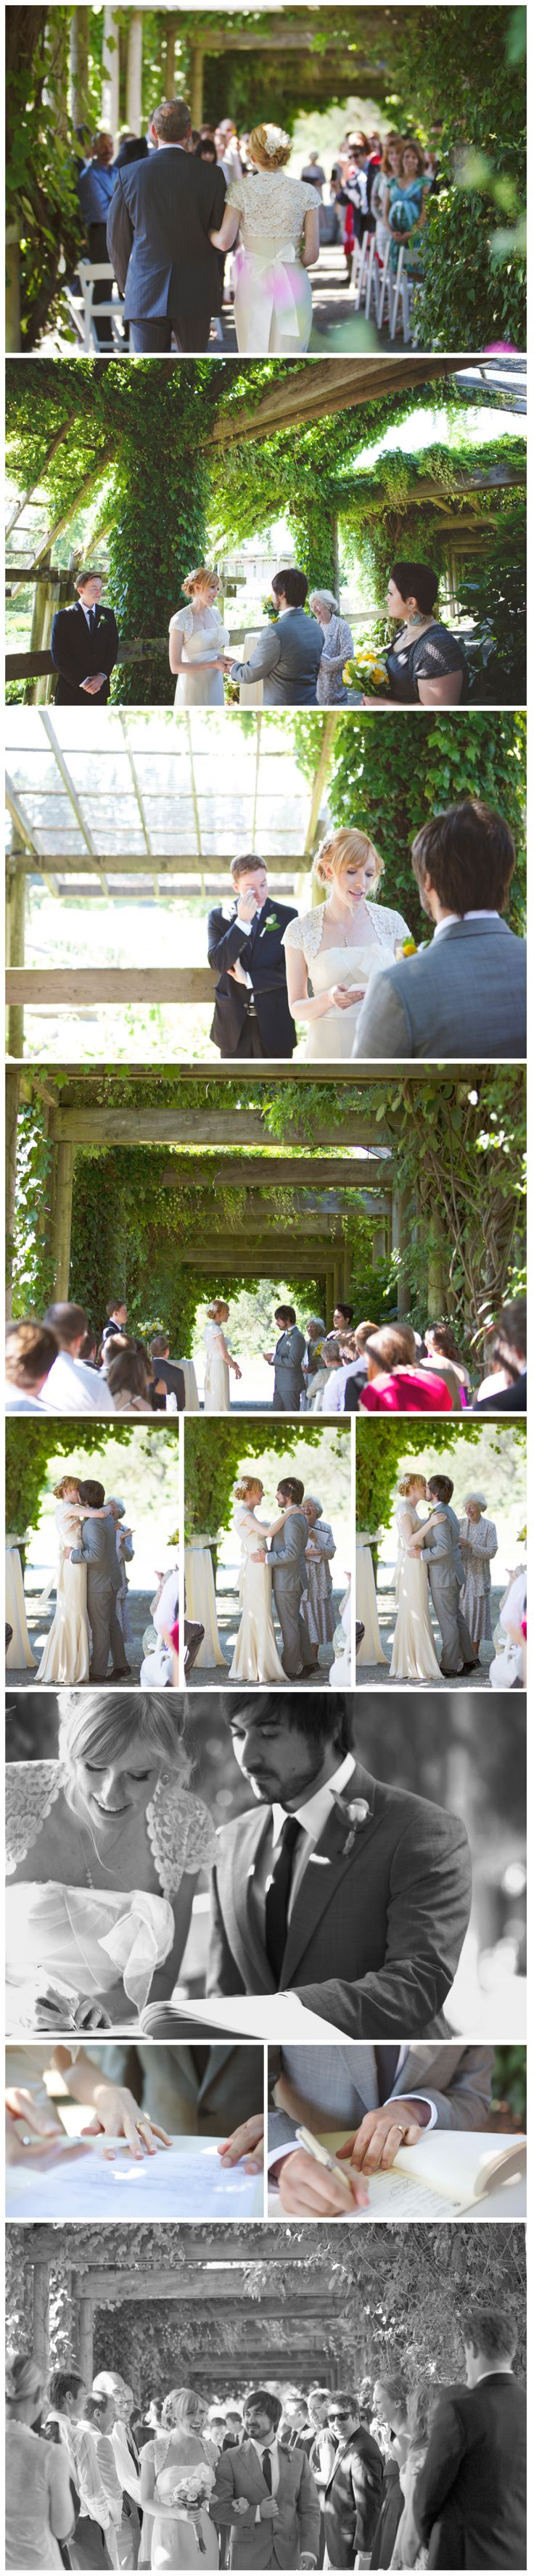 Outdoor wedding under the arbour. Smooch! France Edward Photo wedding photos at UBC Botanical Garden, Vancouver, BC